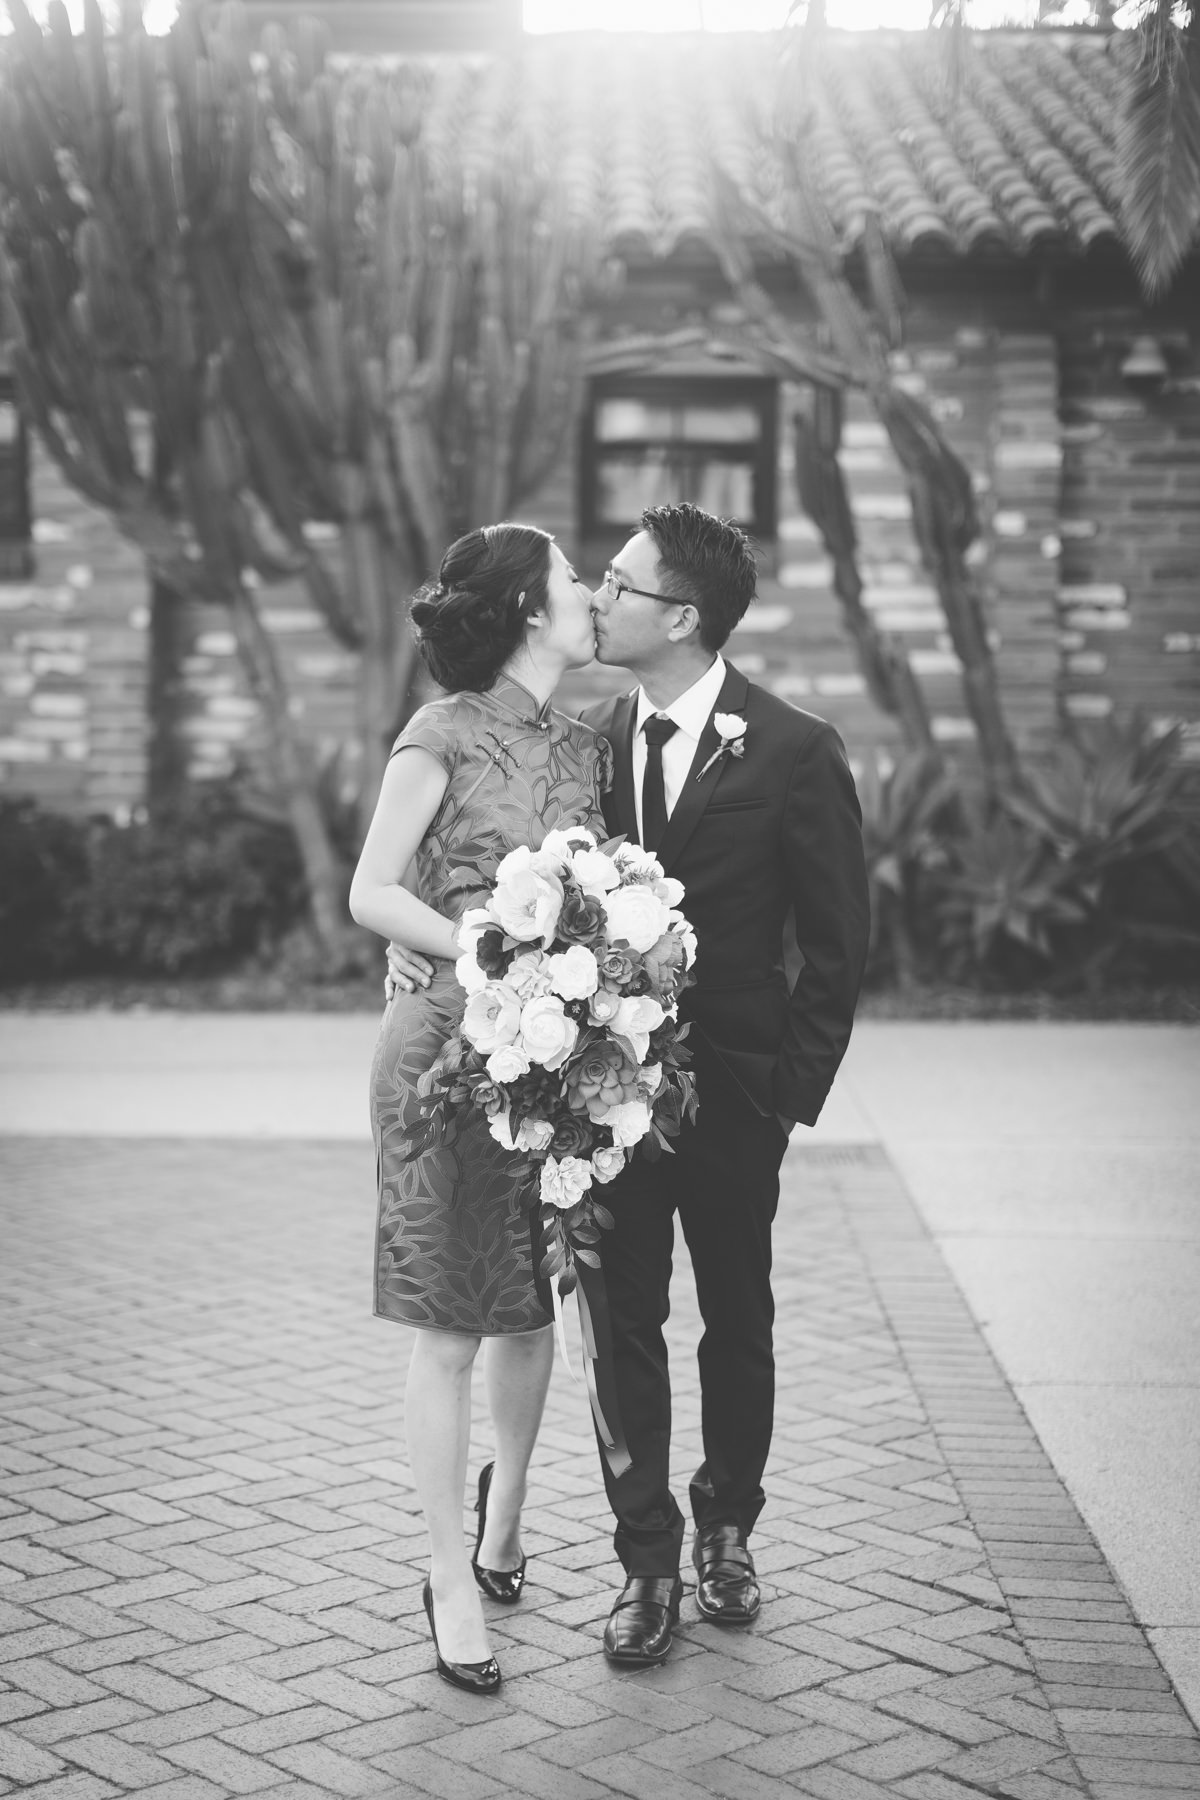 the-light-and-glass-wedding-engagement-photography-20160813-052.jpg